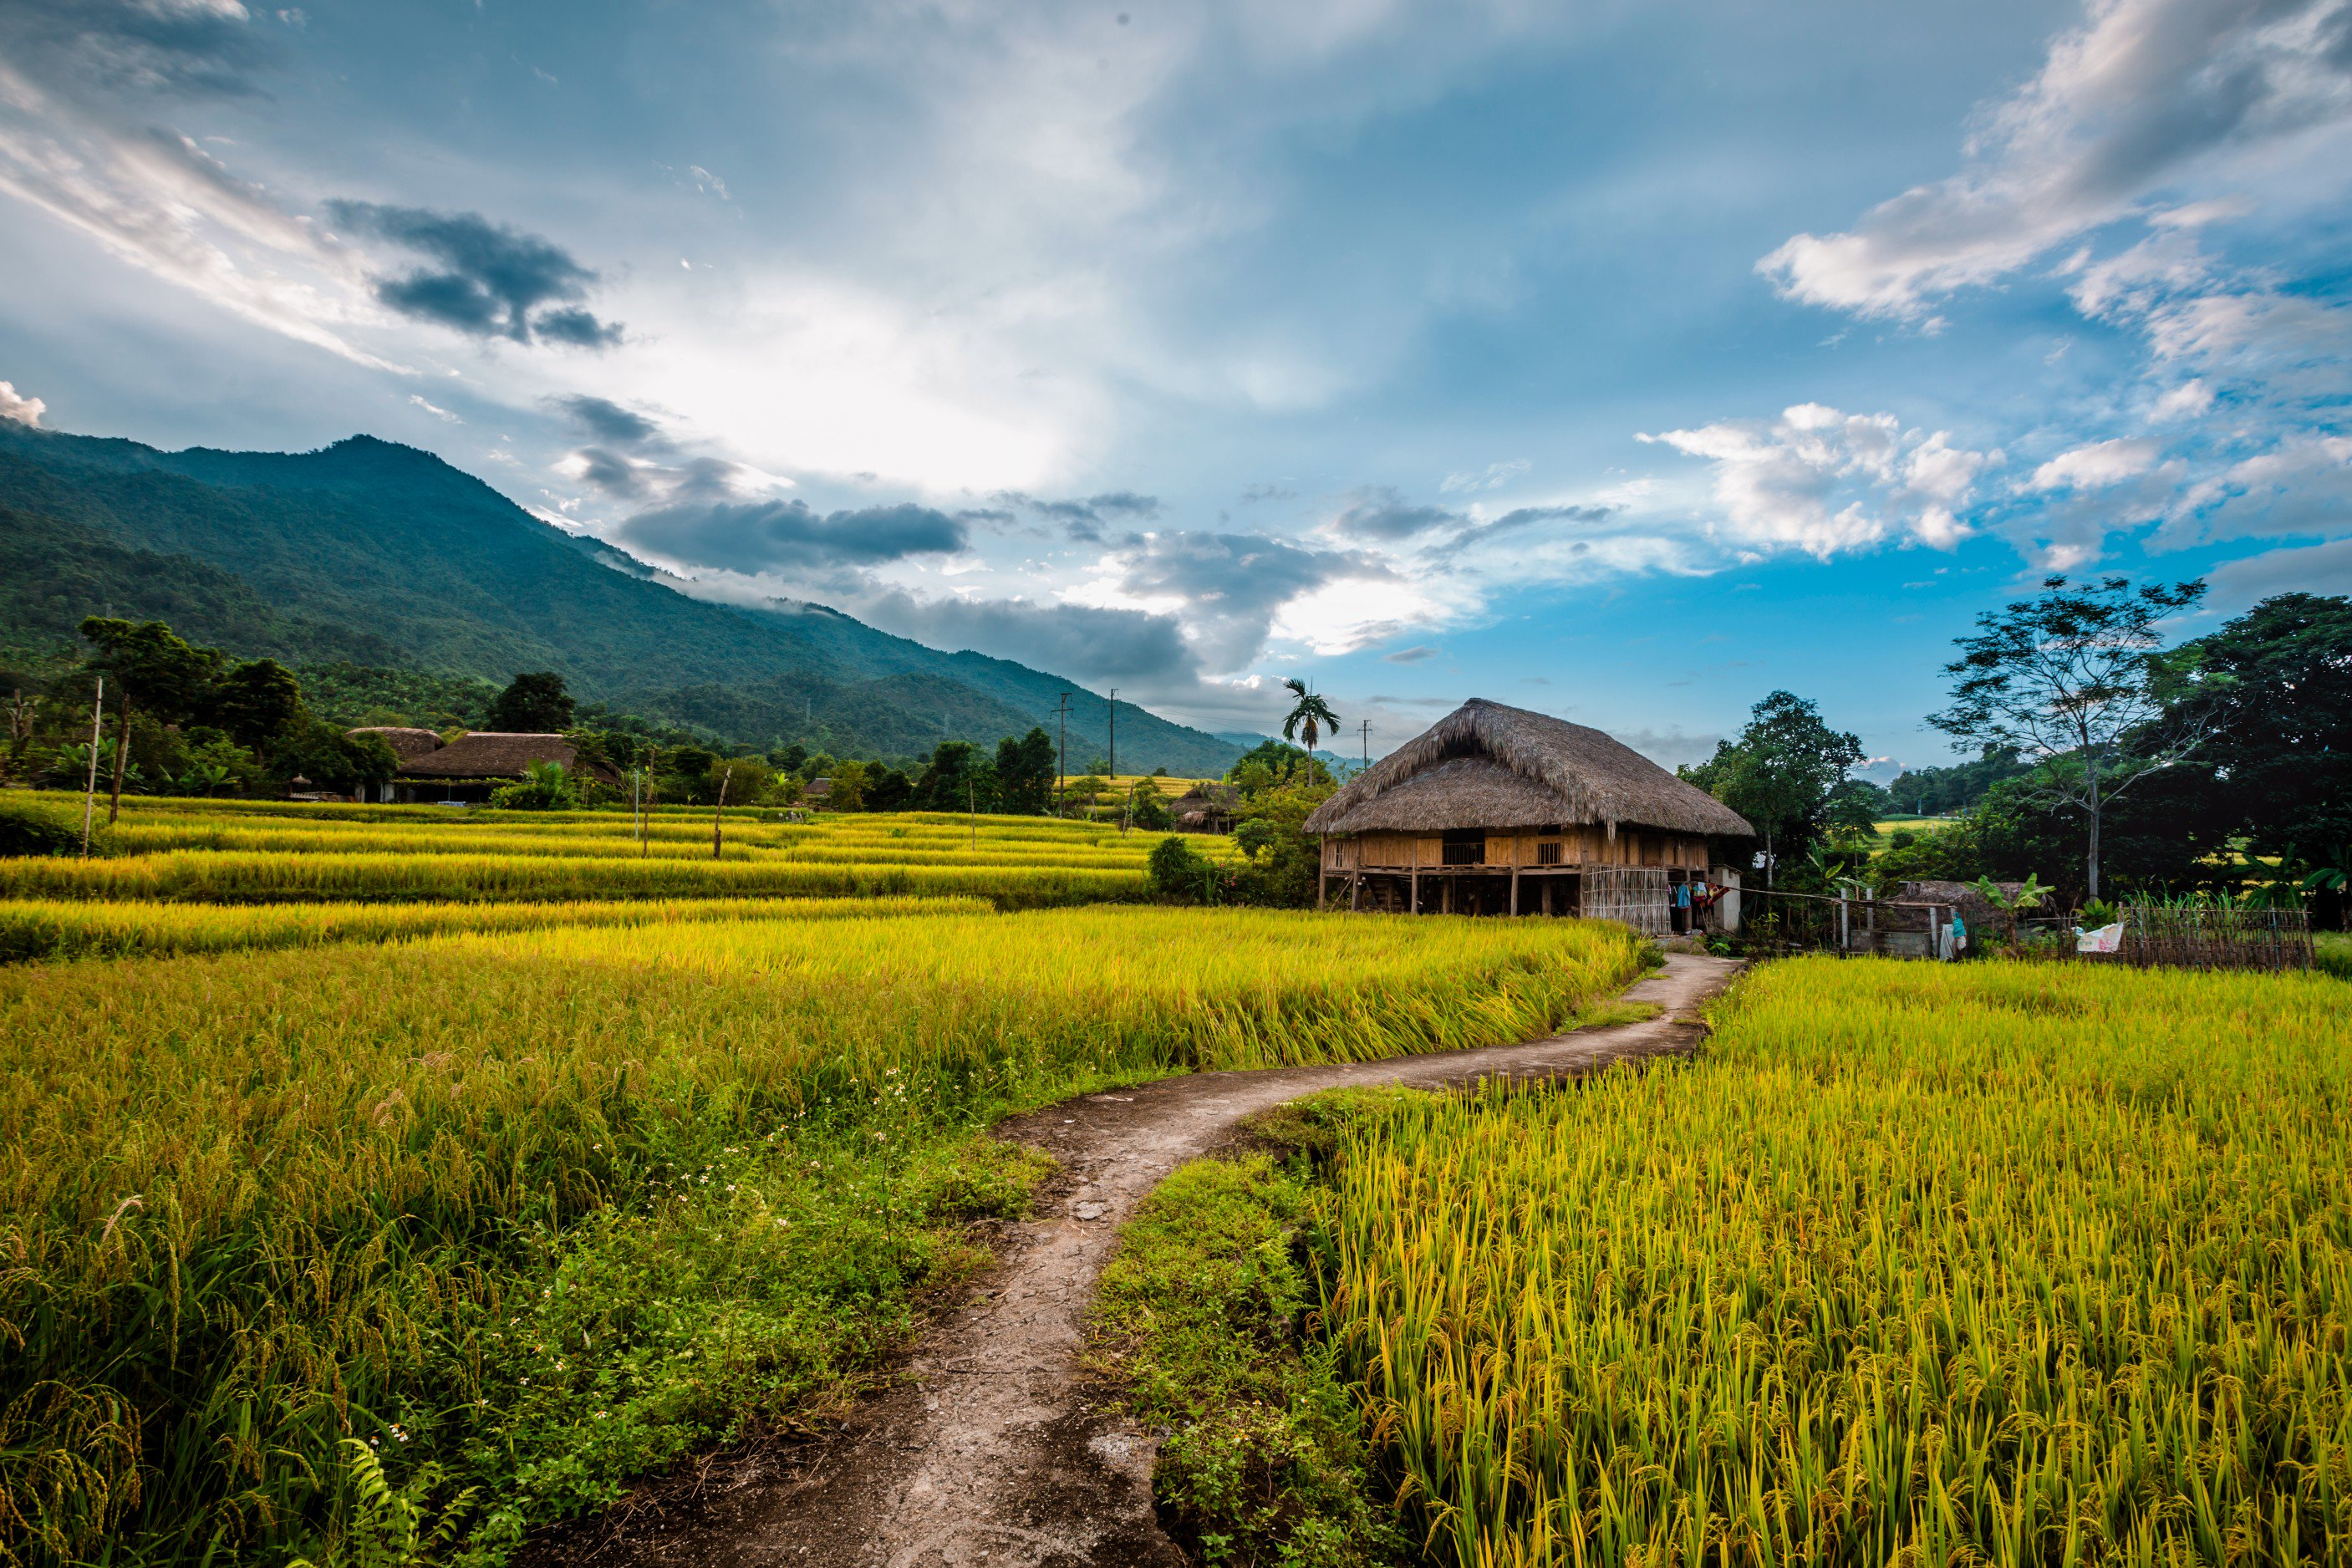 How to Get From Hanoi to Sapa on Your Own